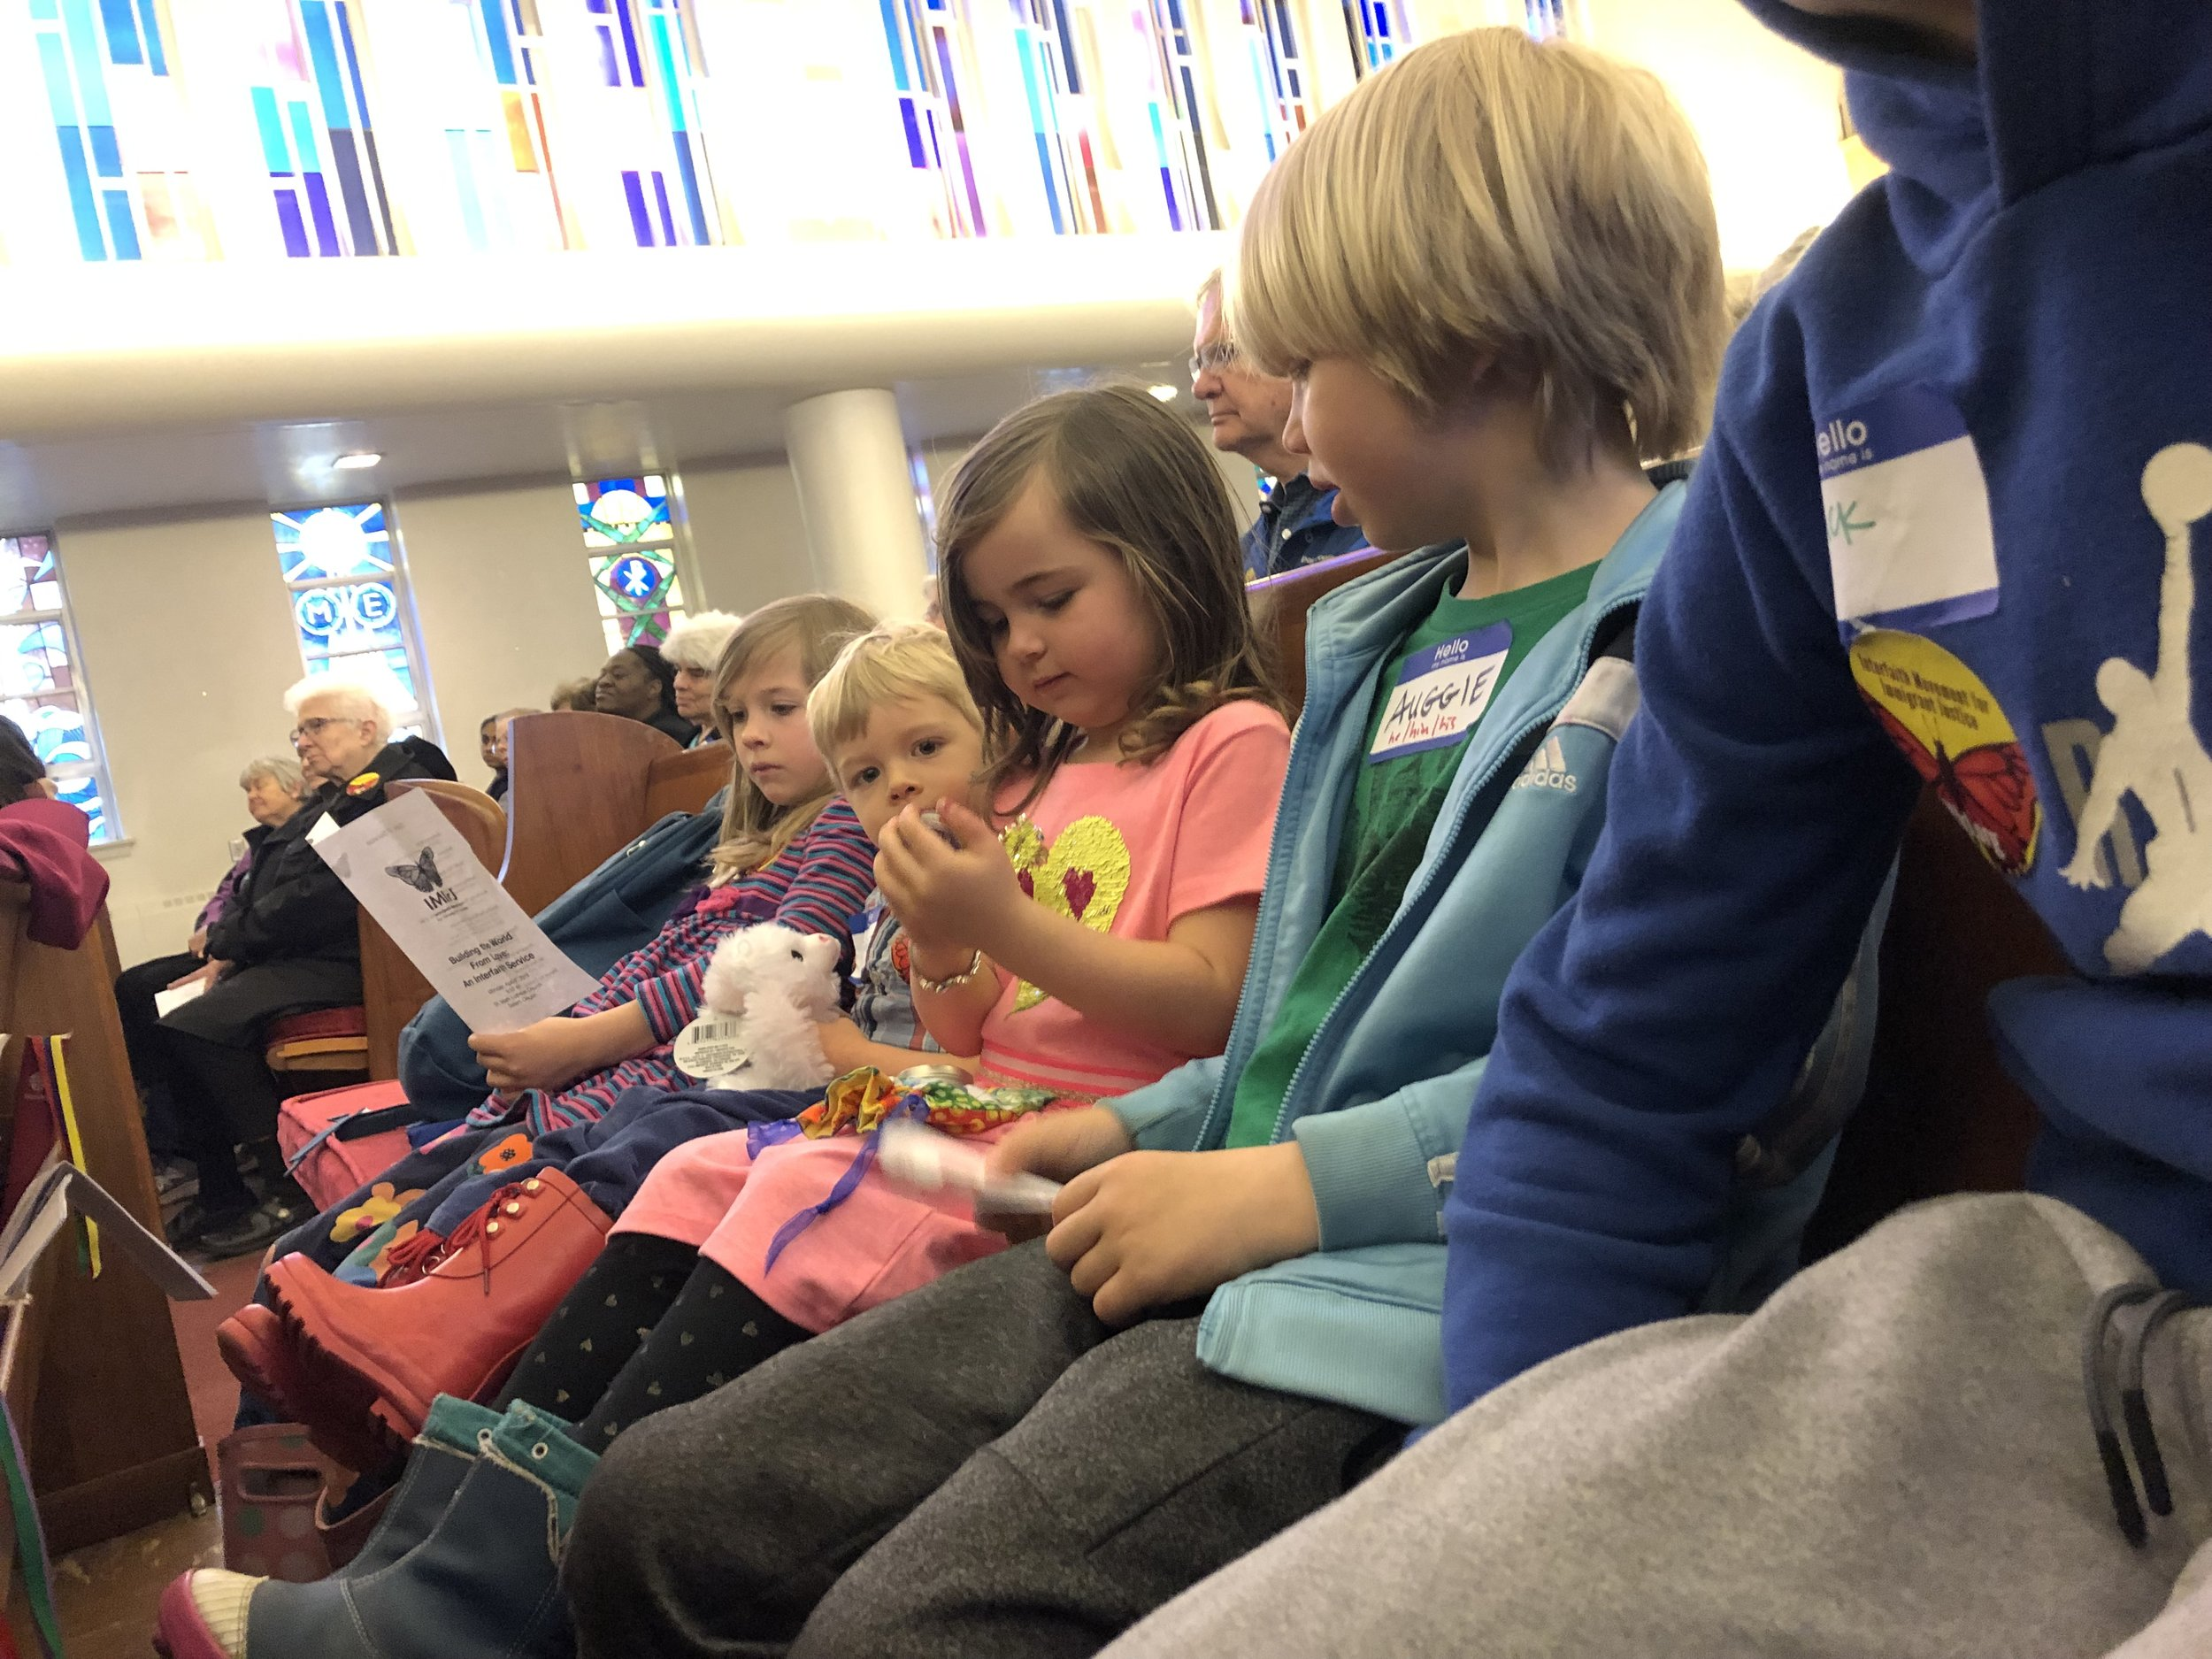 We gathered at St Mark Lutheran in Salem, OR for an interfaith service